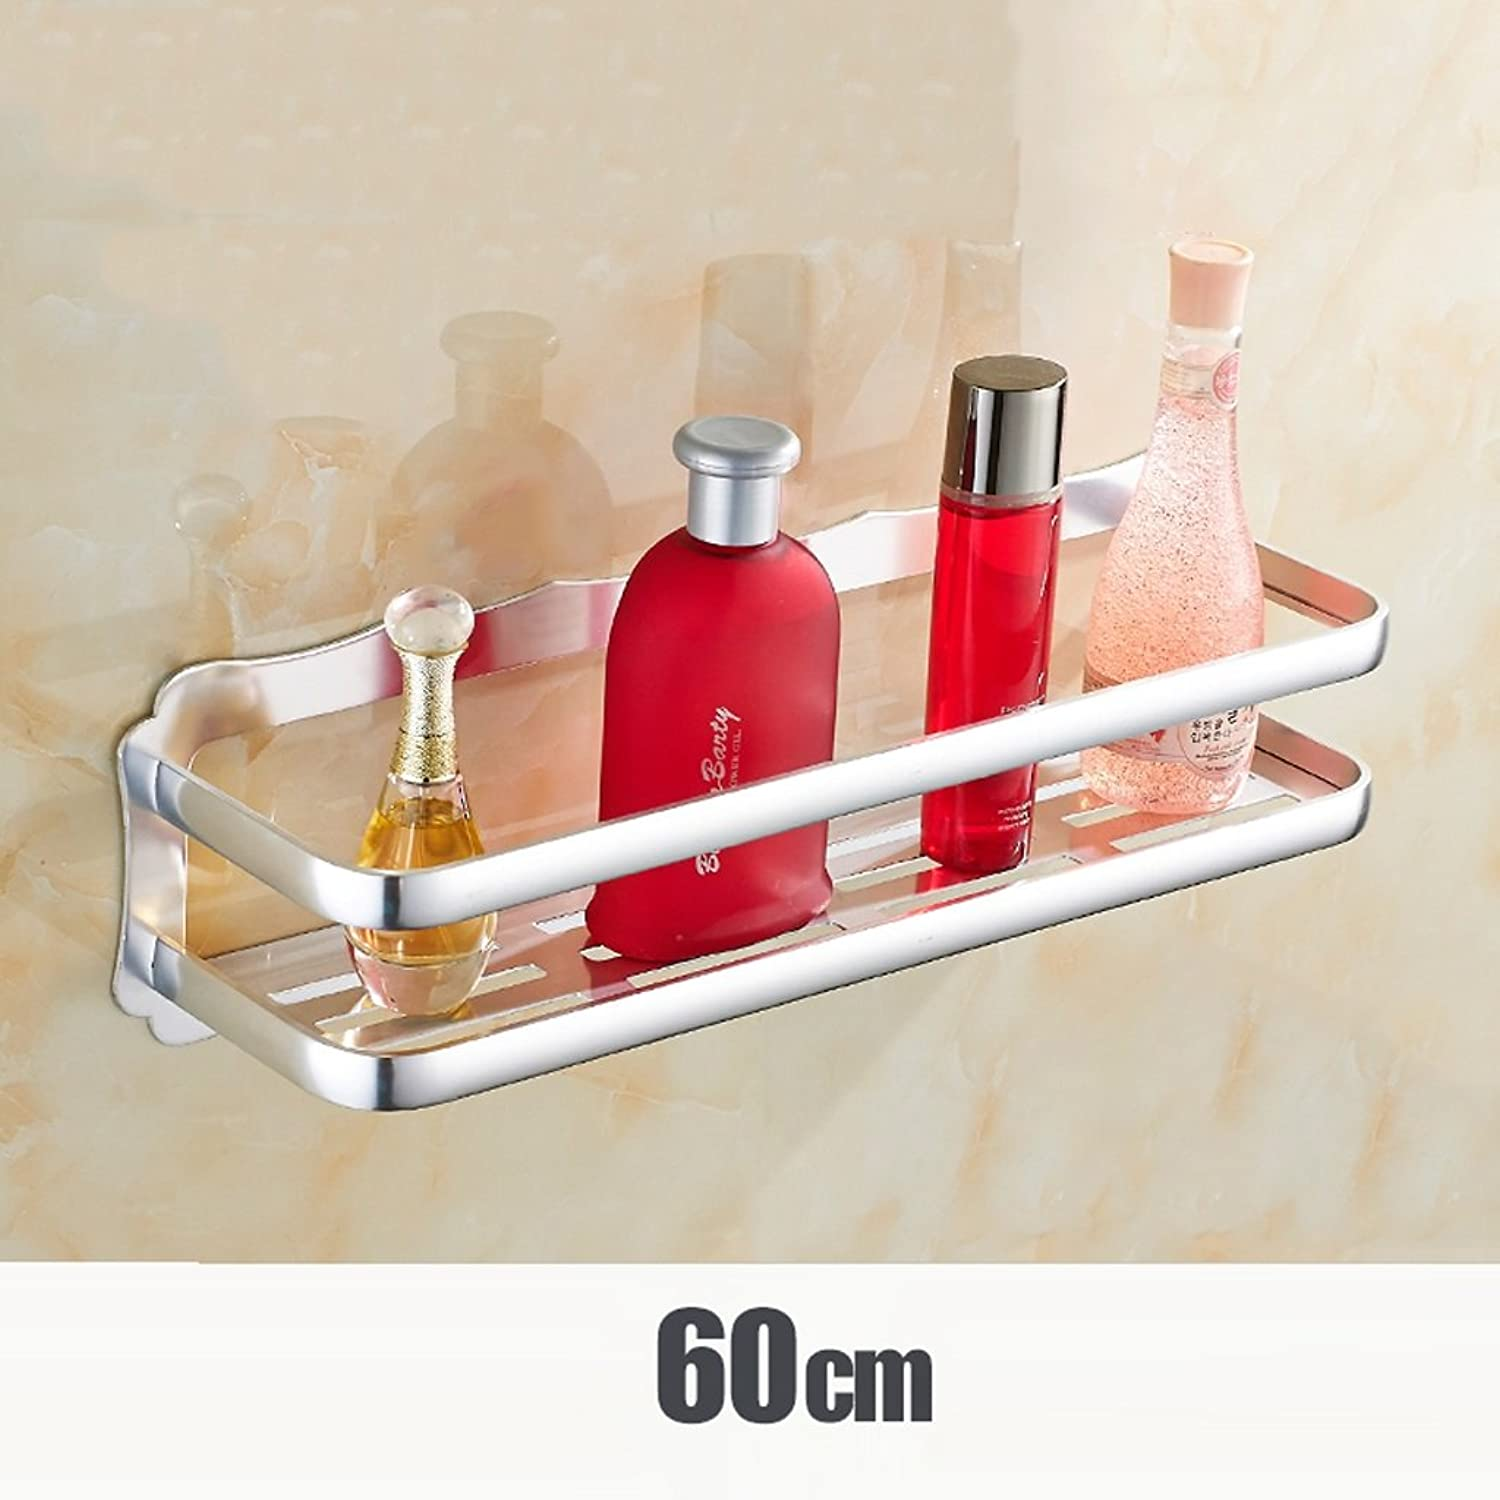 Space Aluminum Shelf Bathroom Toilet Washbasin Triangle Shelf Sucker Wall Mount Bathroom -60CM ( color   Silver )